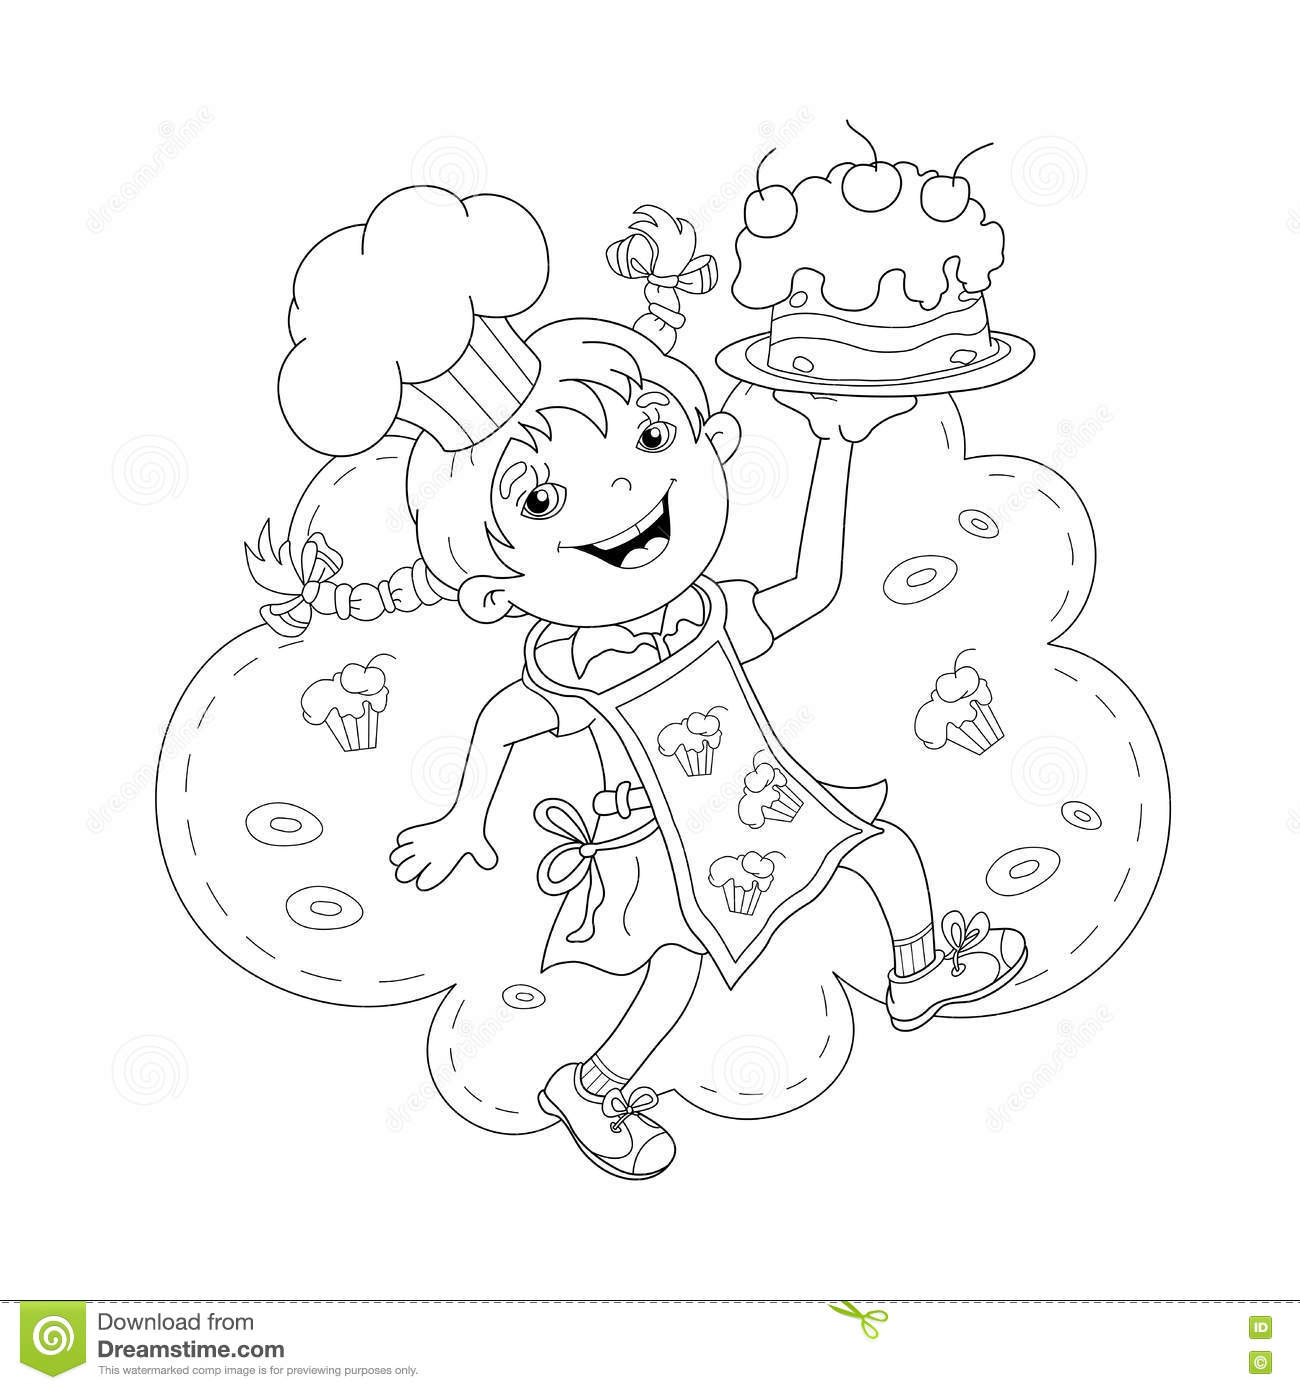 Coloring Page Outline Of Cartoon Girl Chef With Cake Stock Vector ...